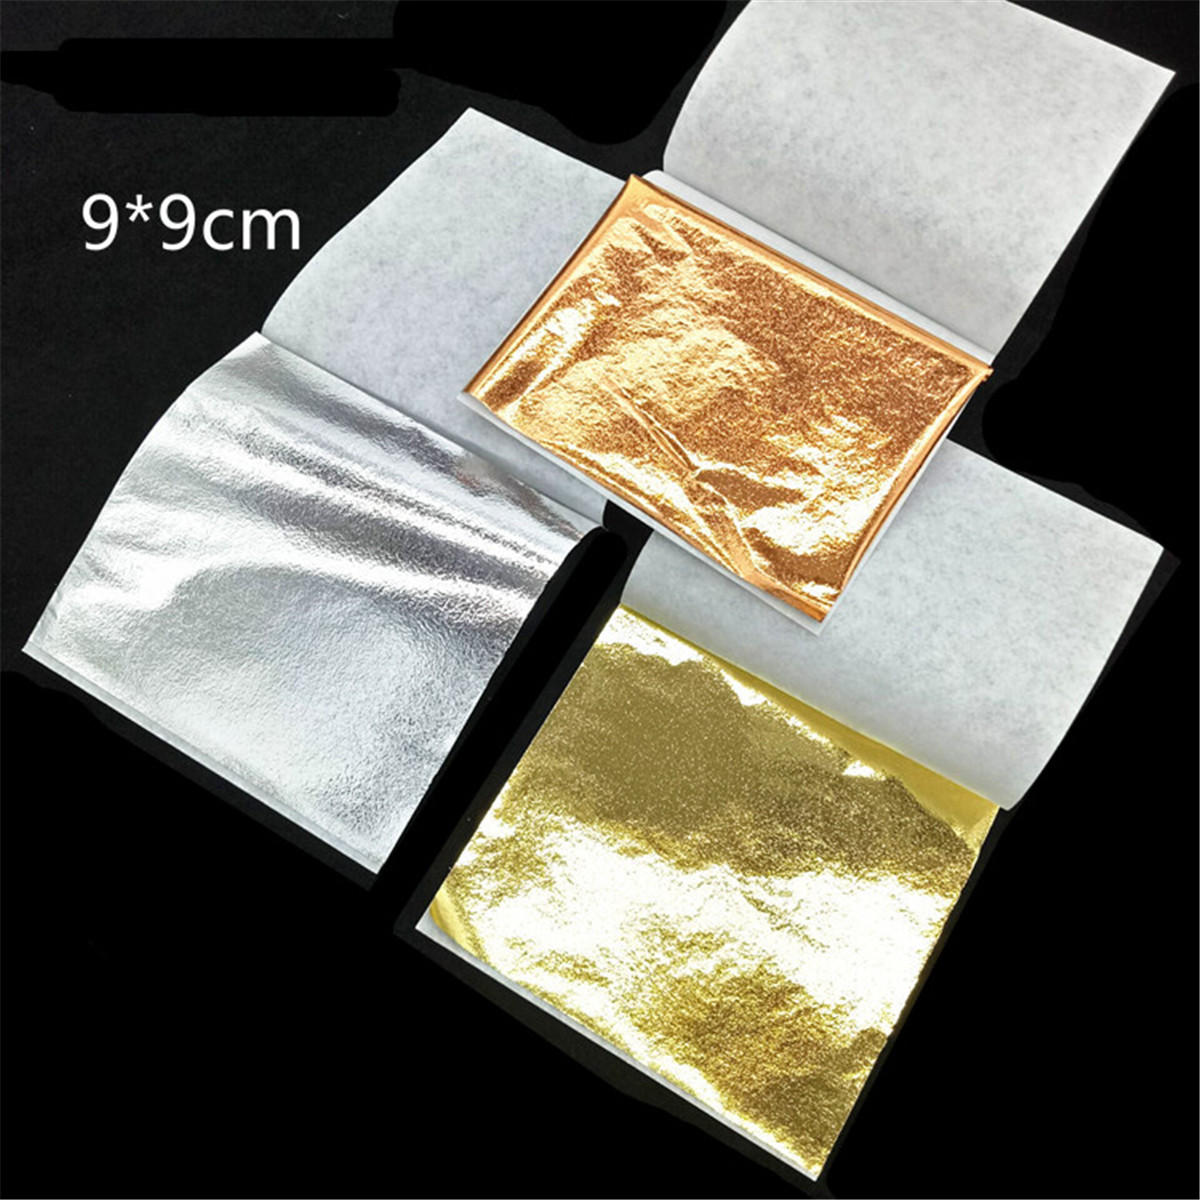 Rose Gold Nail Foin Paper Nail Art Flake and Mirror Effect Accessories for Foil Transfer Nail Paillette Decorations Gold Silver 3pcs set fashion gold silver nail art rolling striping tape gold silver nail art line tape multi size 1mm 2mm 3mm